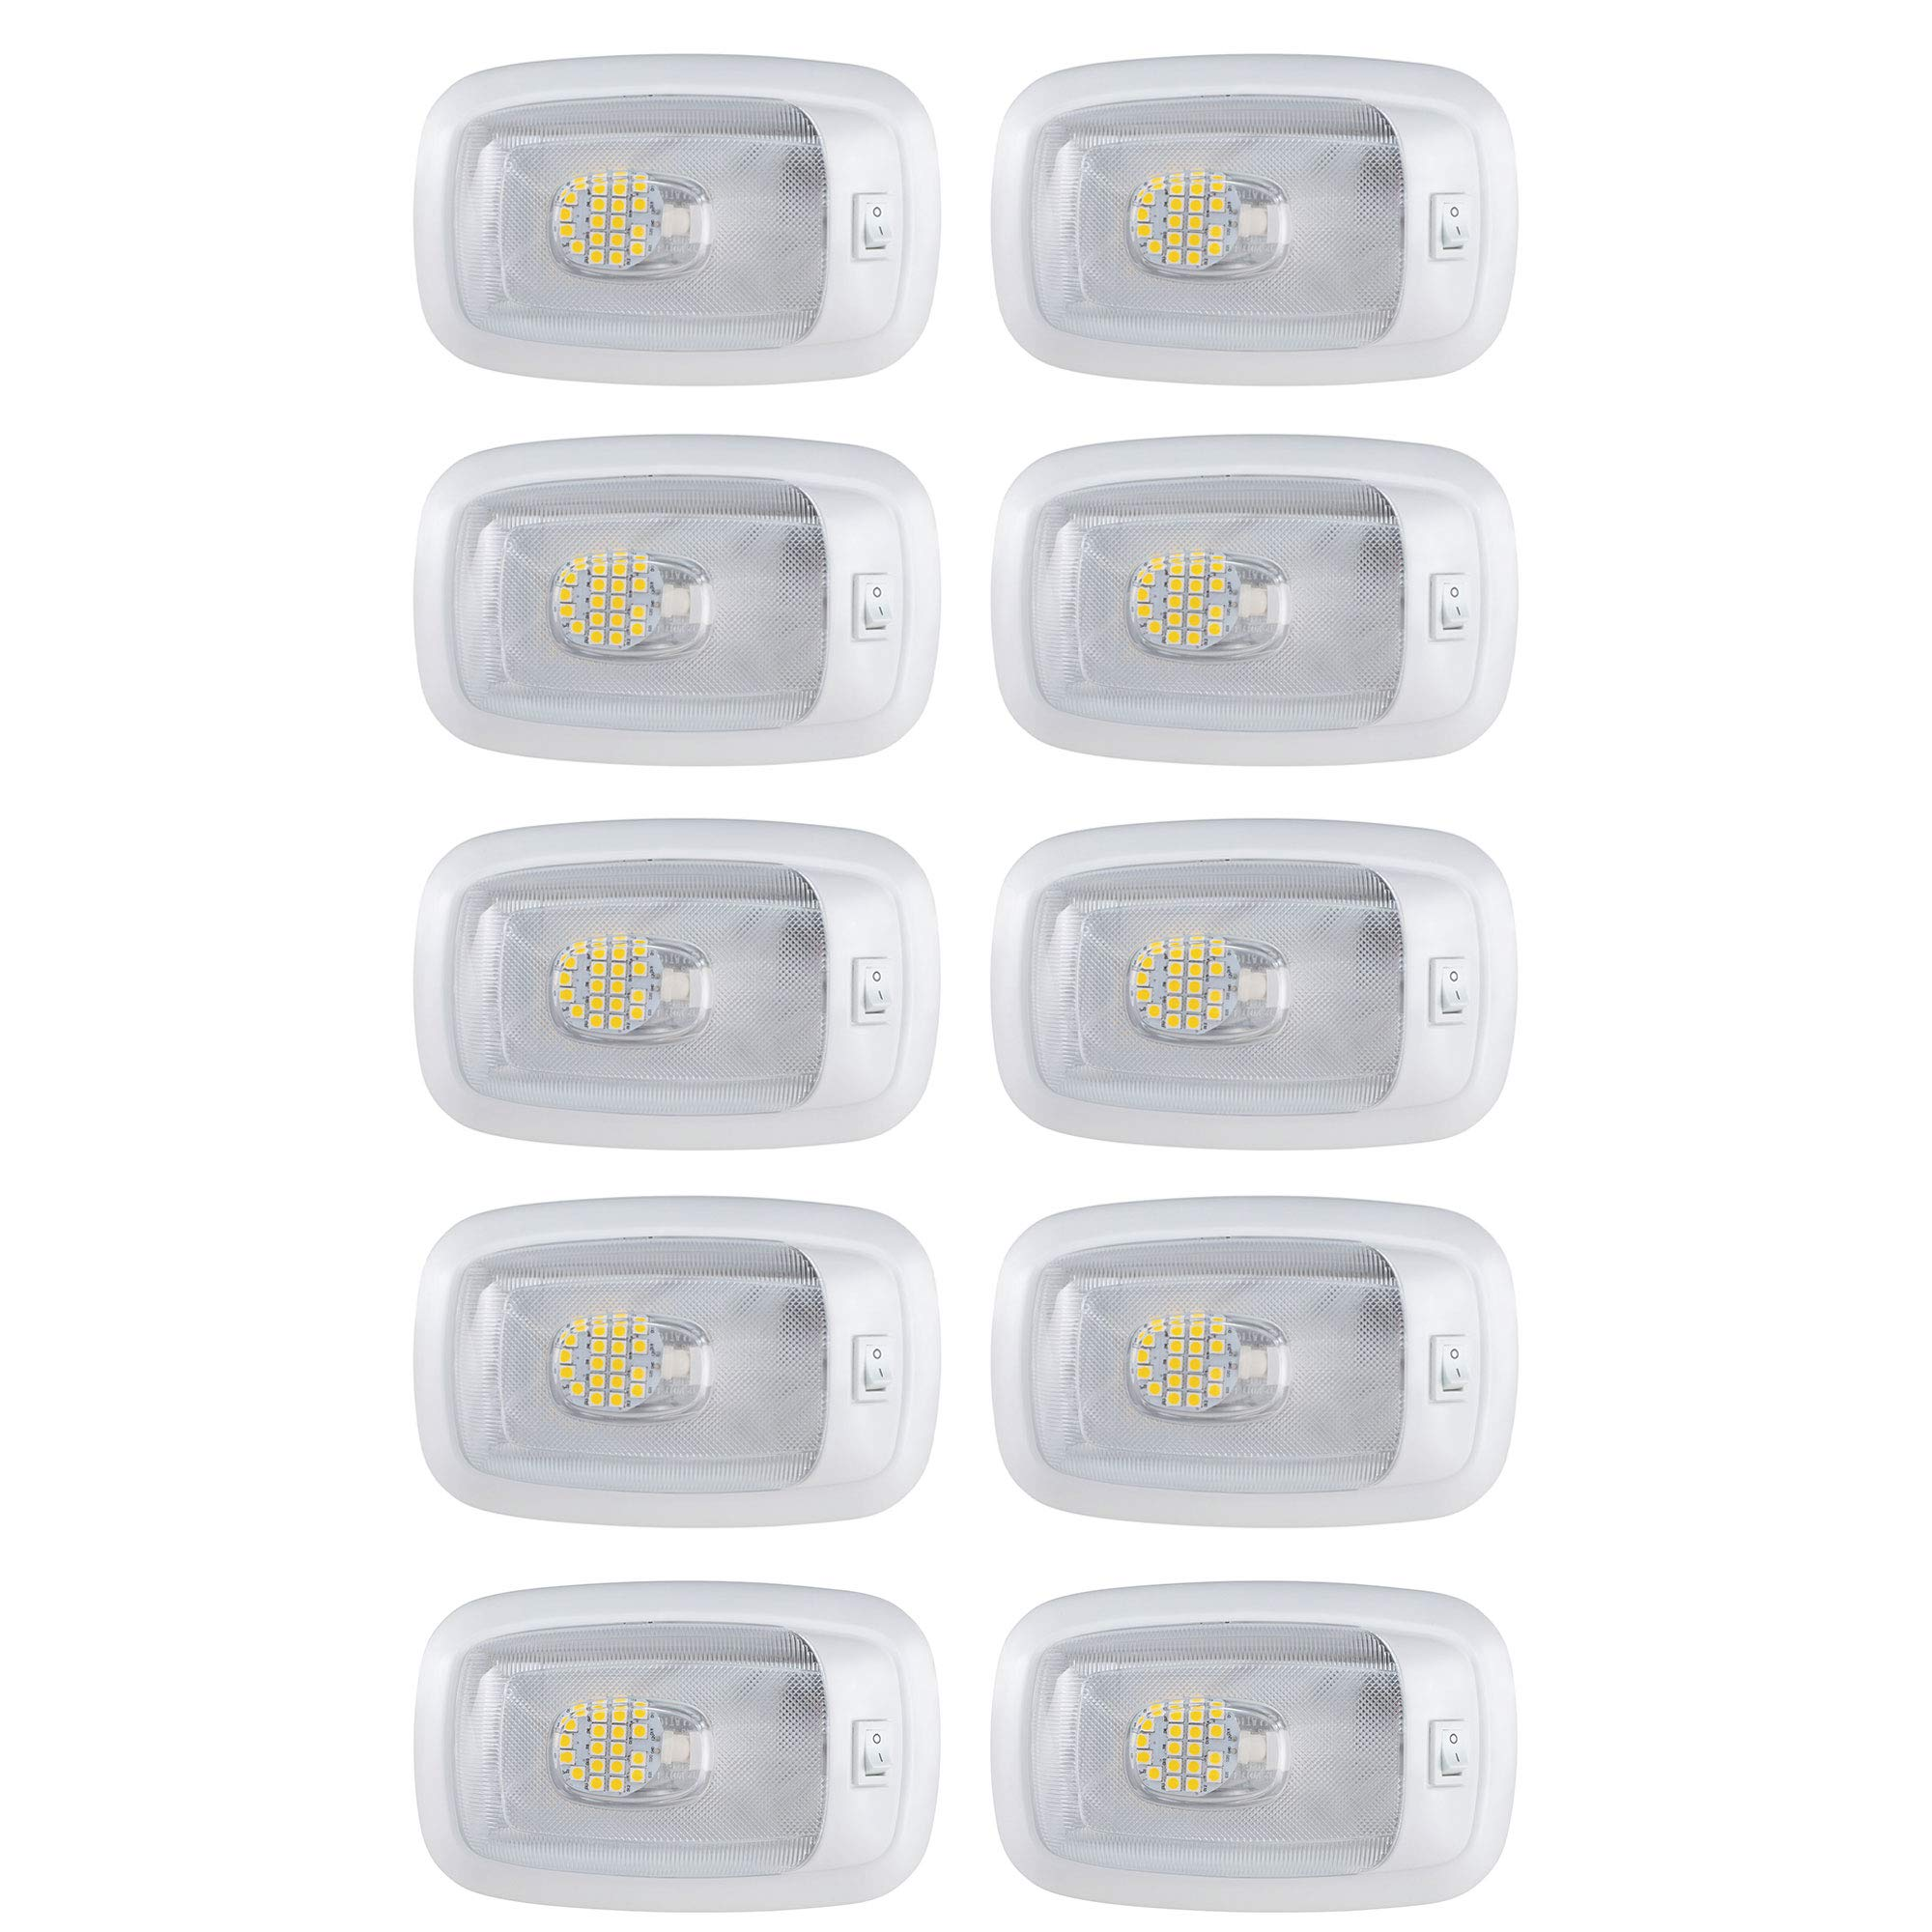 10 NEW RV LED 12v 3200K PANCAKE CEILING FIXTURE SINGLE DOME LIGHT FOR CAMPERS TRAILERS RV MARINE